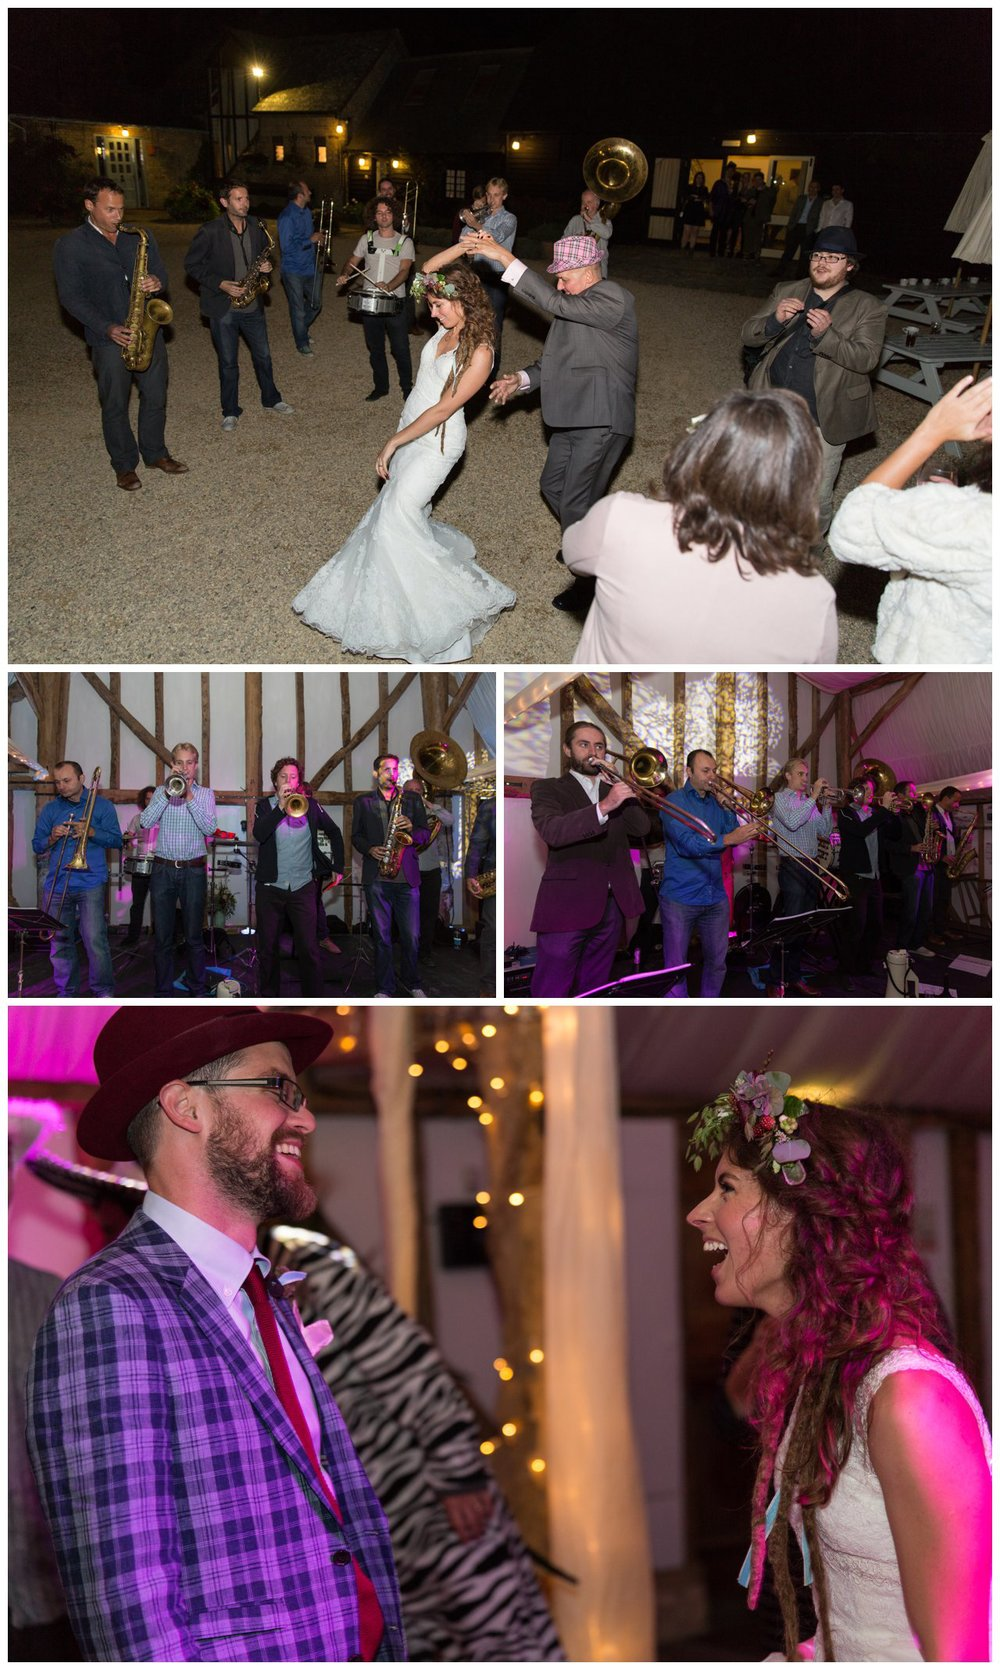 wedding_dancing_hackney_colliery_band.jpg